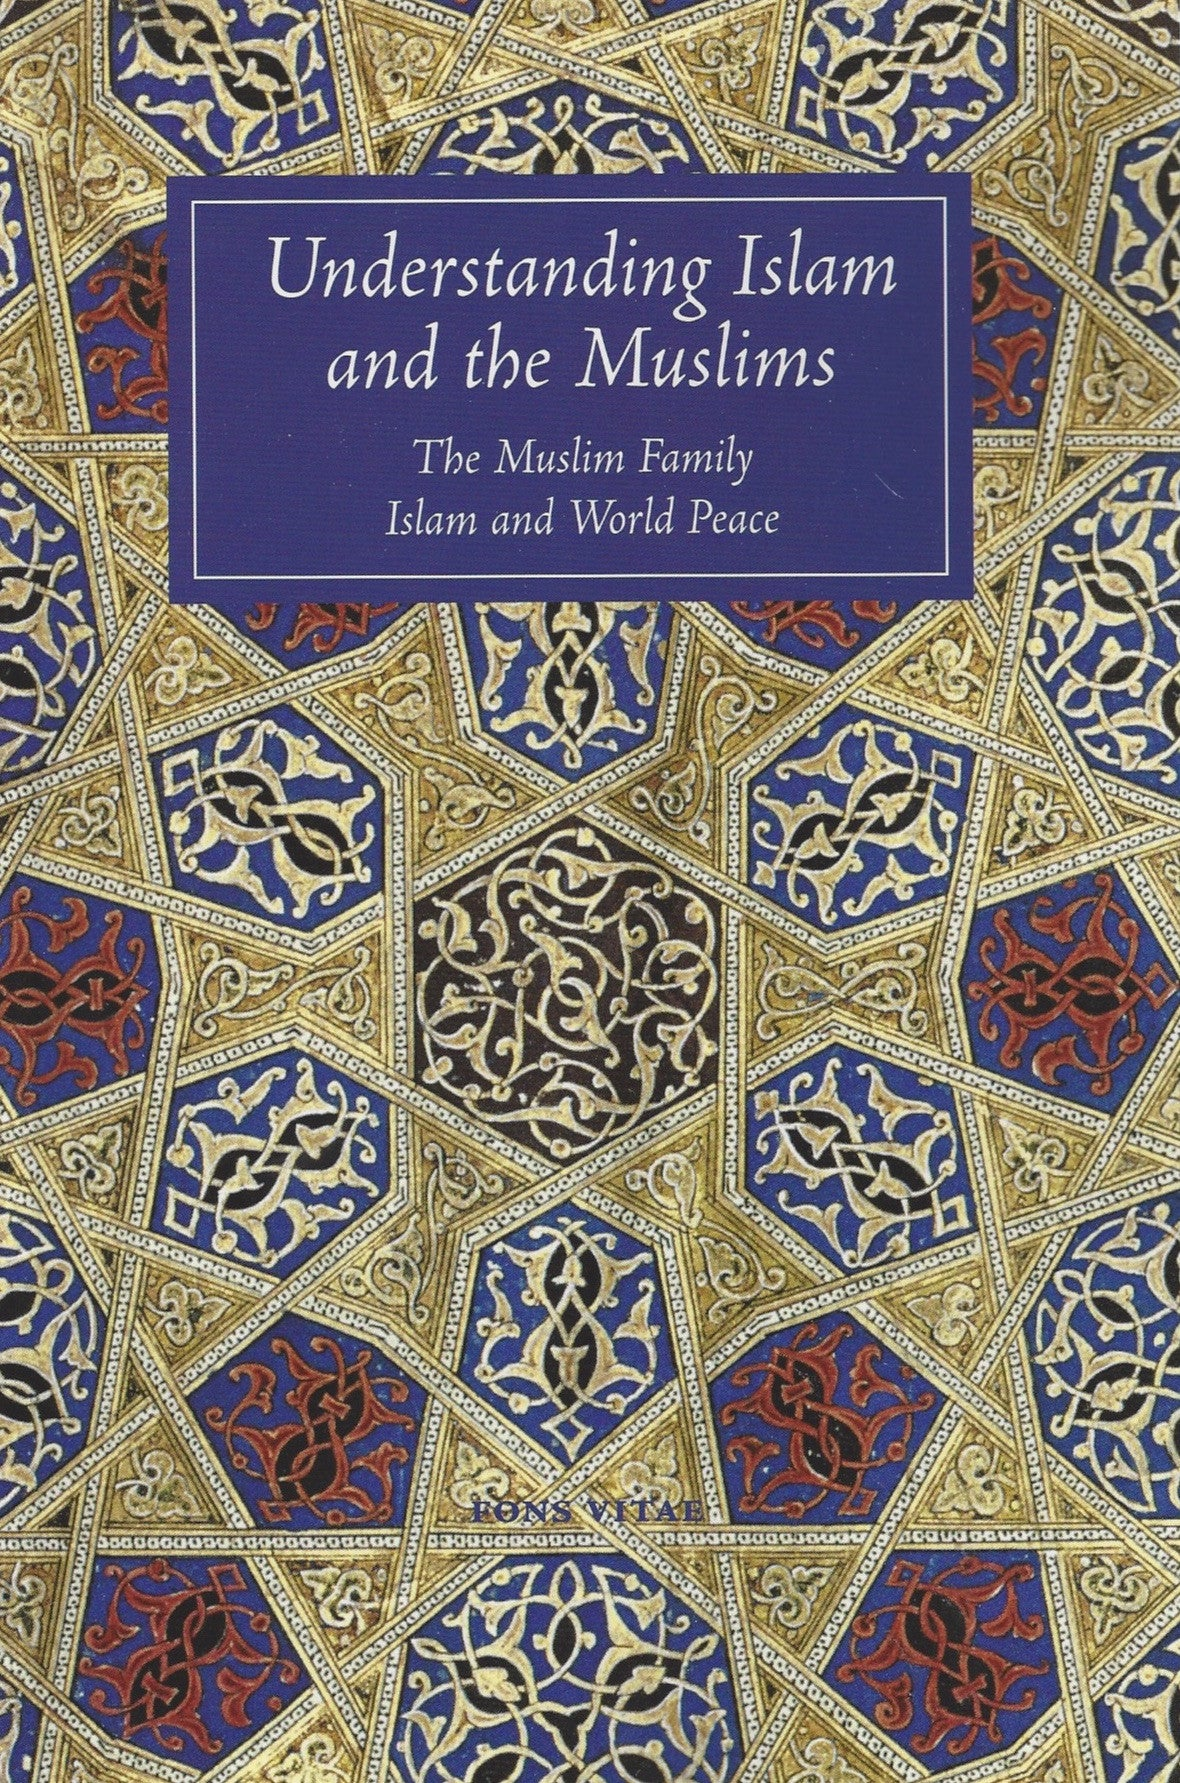 Understanding Islam and the Muslims , Book - Daybreak Press Global Bookshop, Daybreak Press Global Bookshop